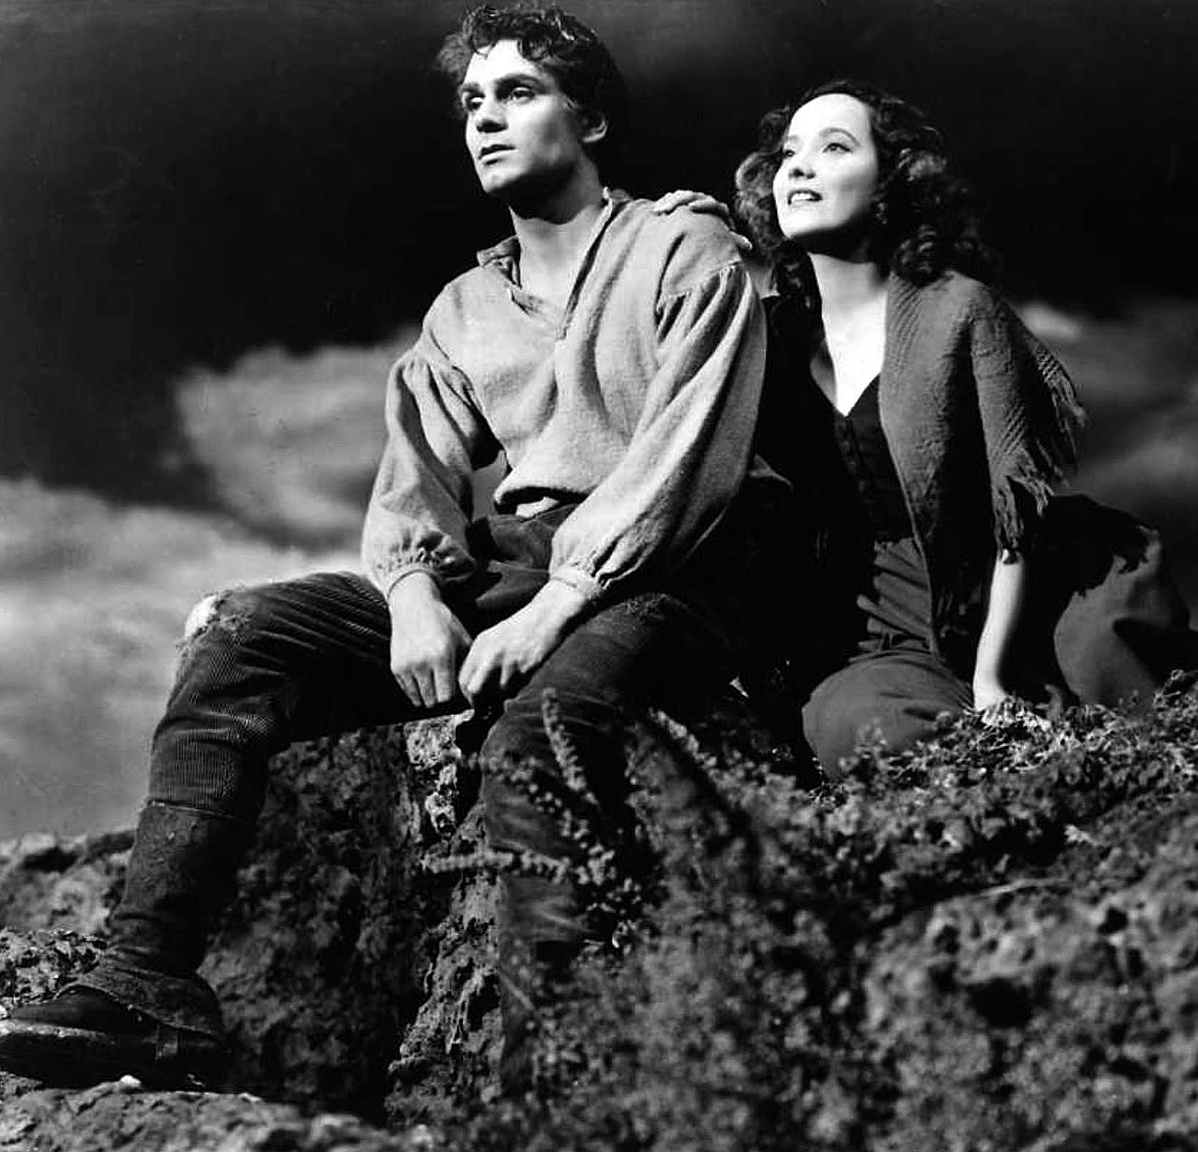 Laurence_Olivier_Merle_Oberon_Wuthering_Heights-171550.jpg